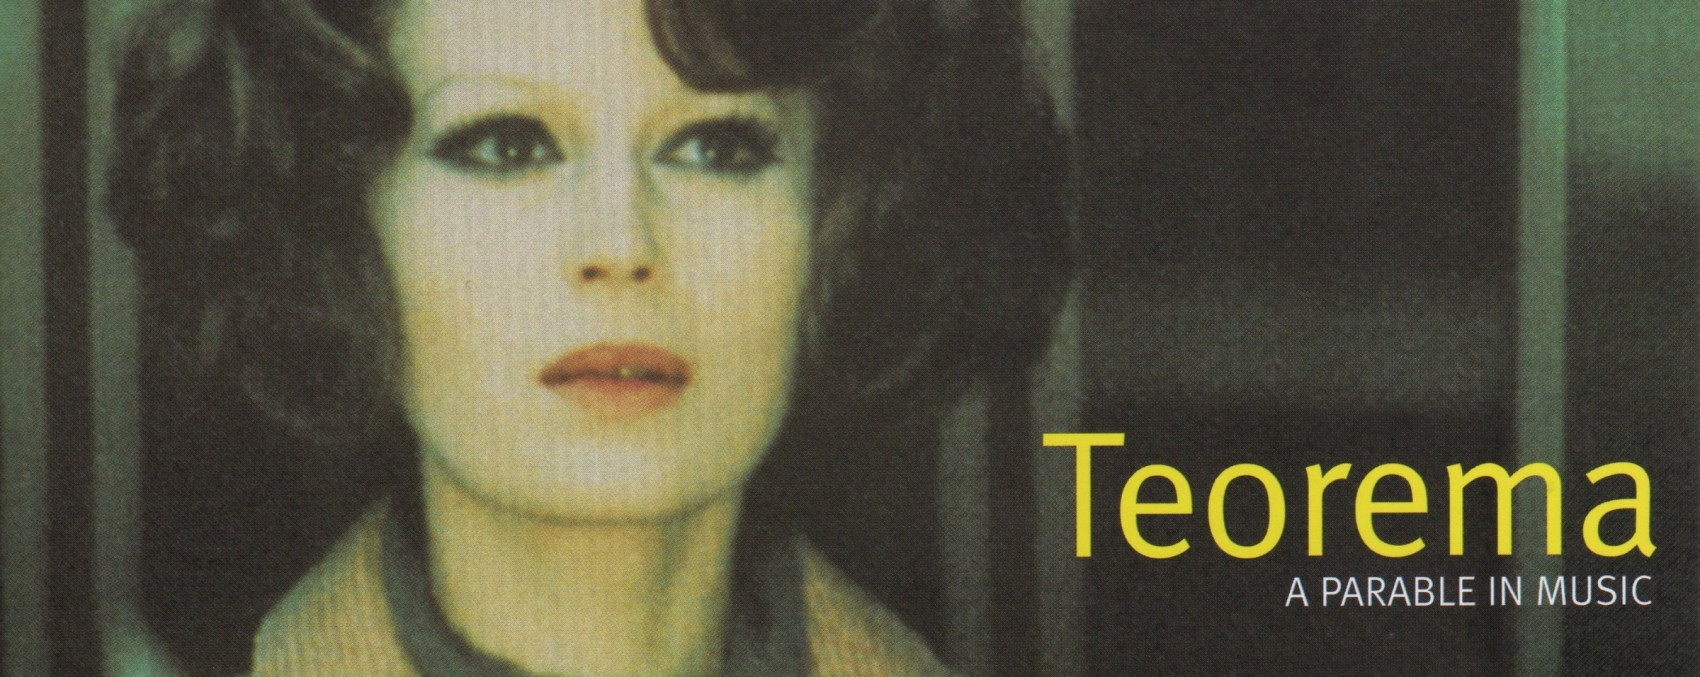 Promo image: close up of woman's face with the words: Teorema A Parable in Music